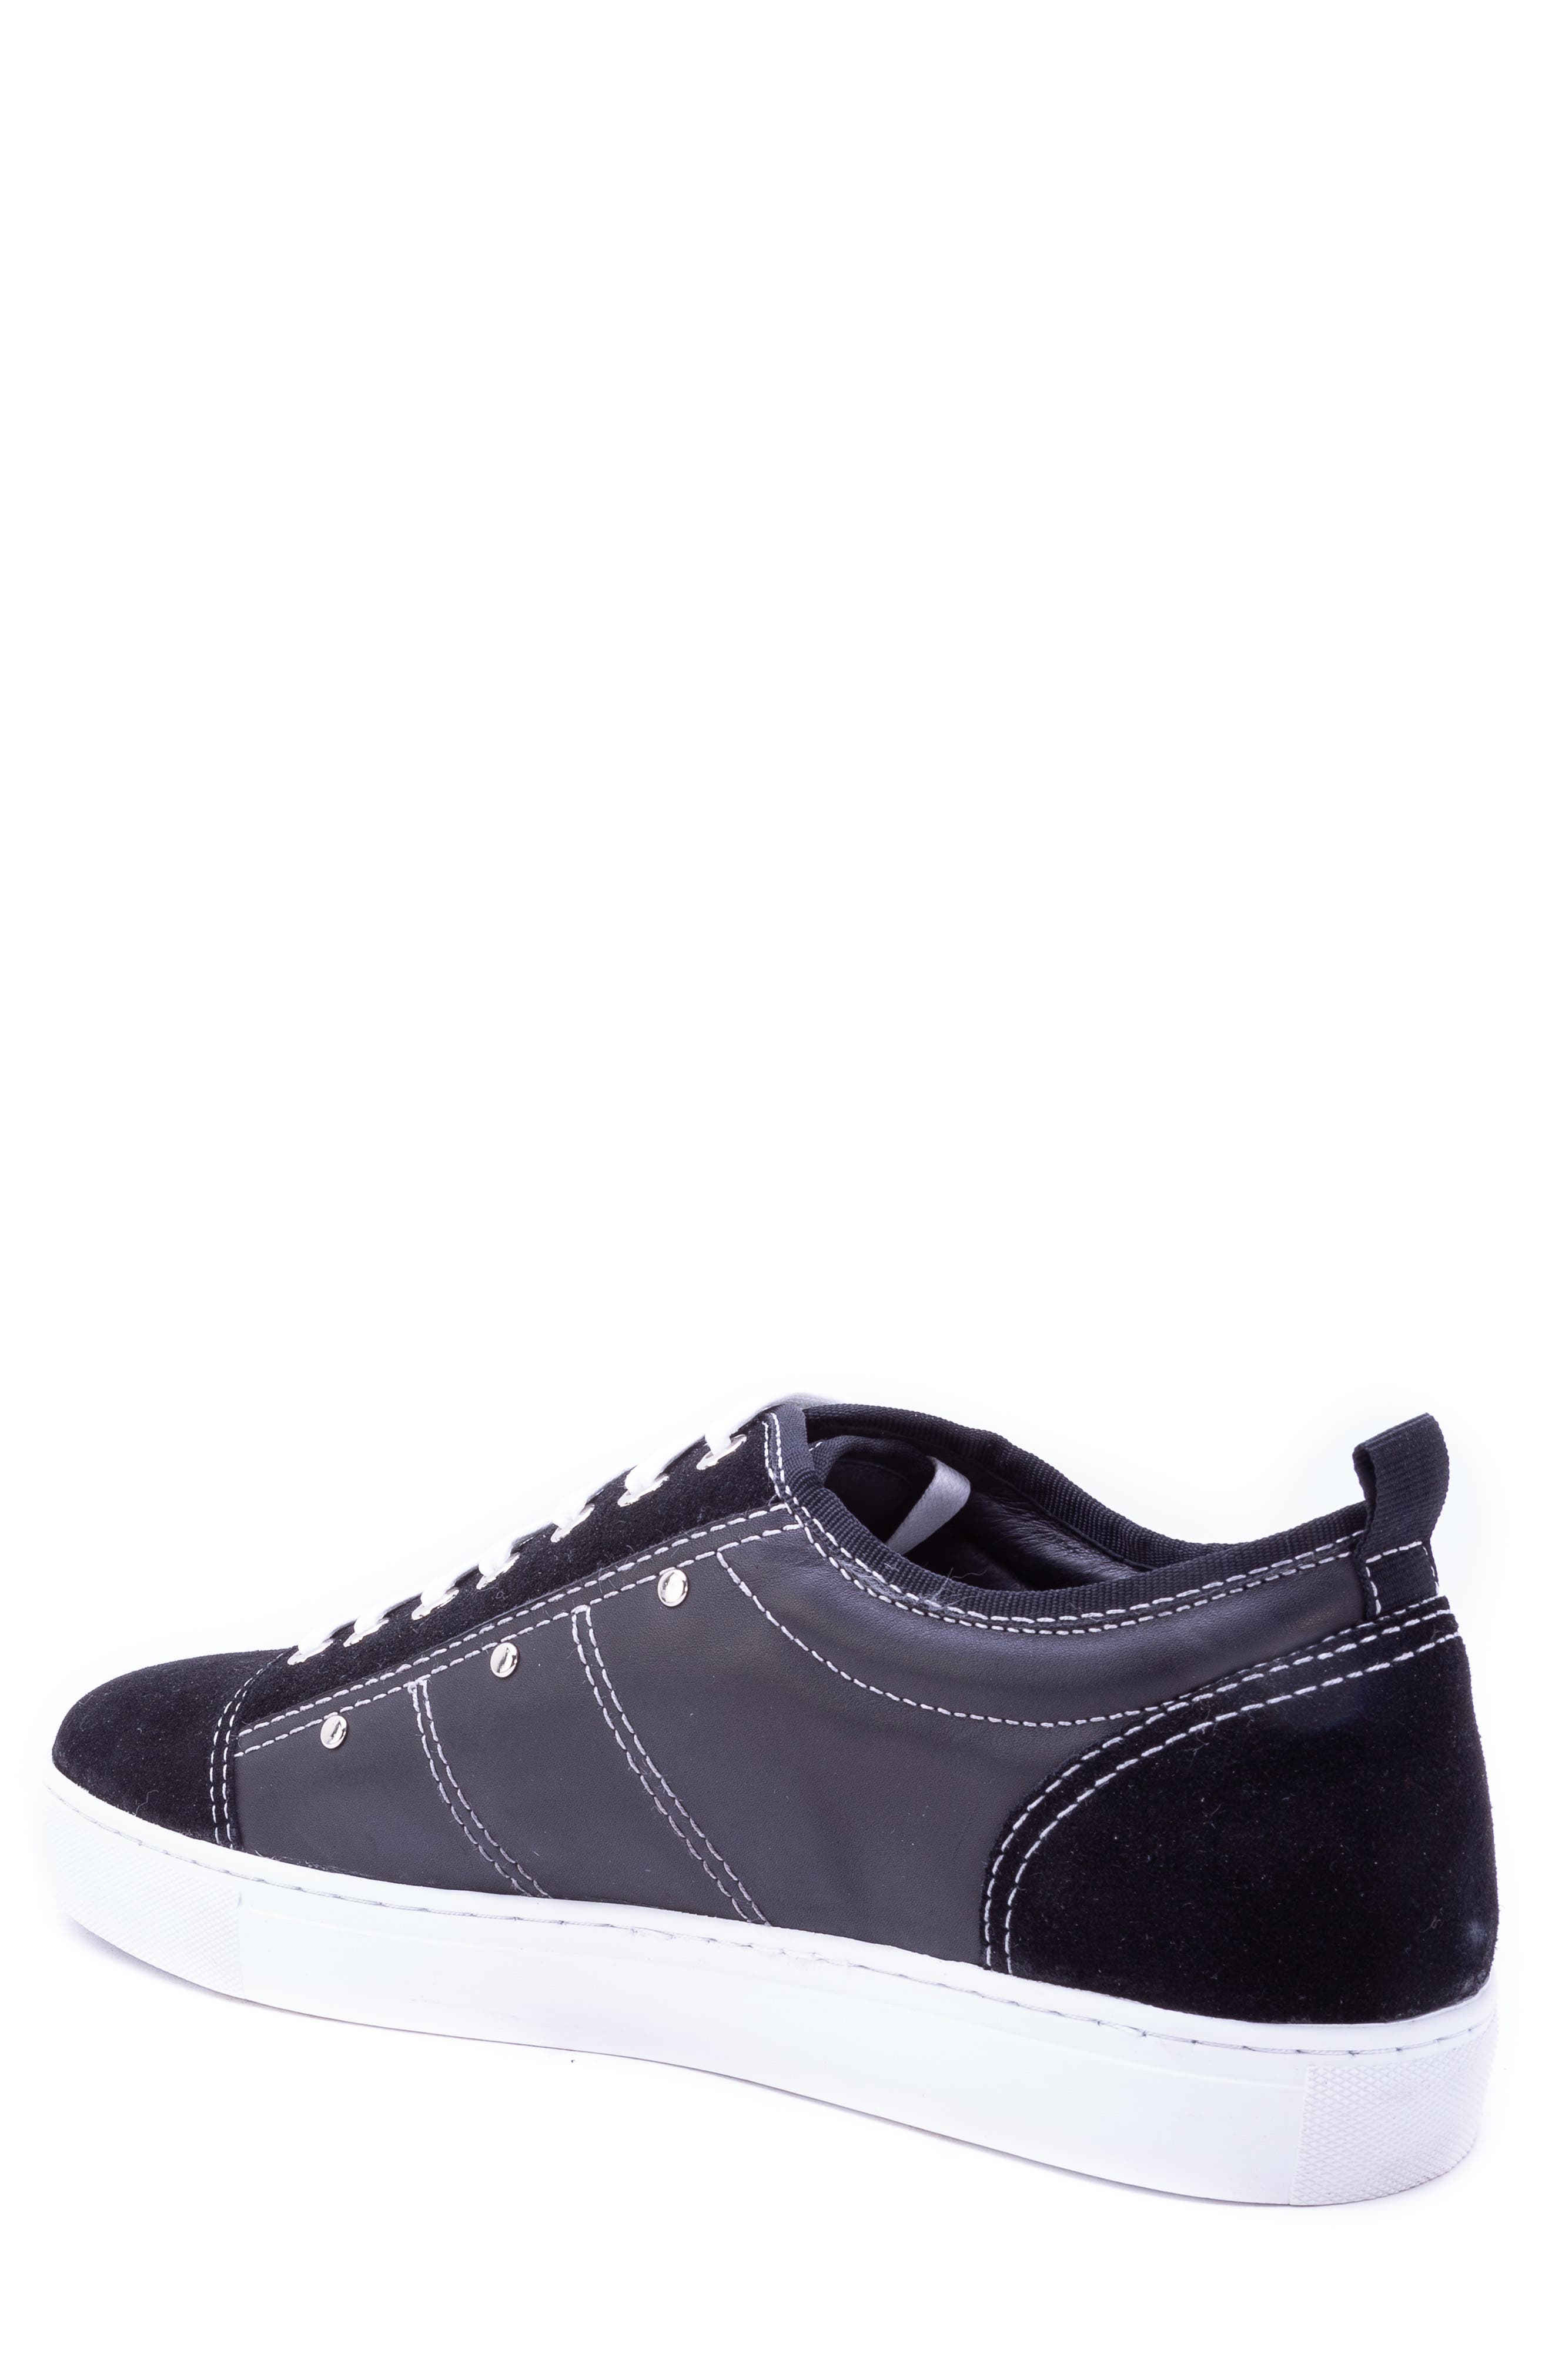 Severn Studded Low Top Sneaker,                             Alternate thumbnail 2, color,                             BLACK SUEDE/ LEATHER